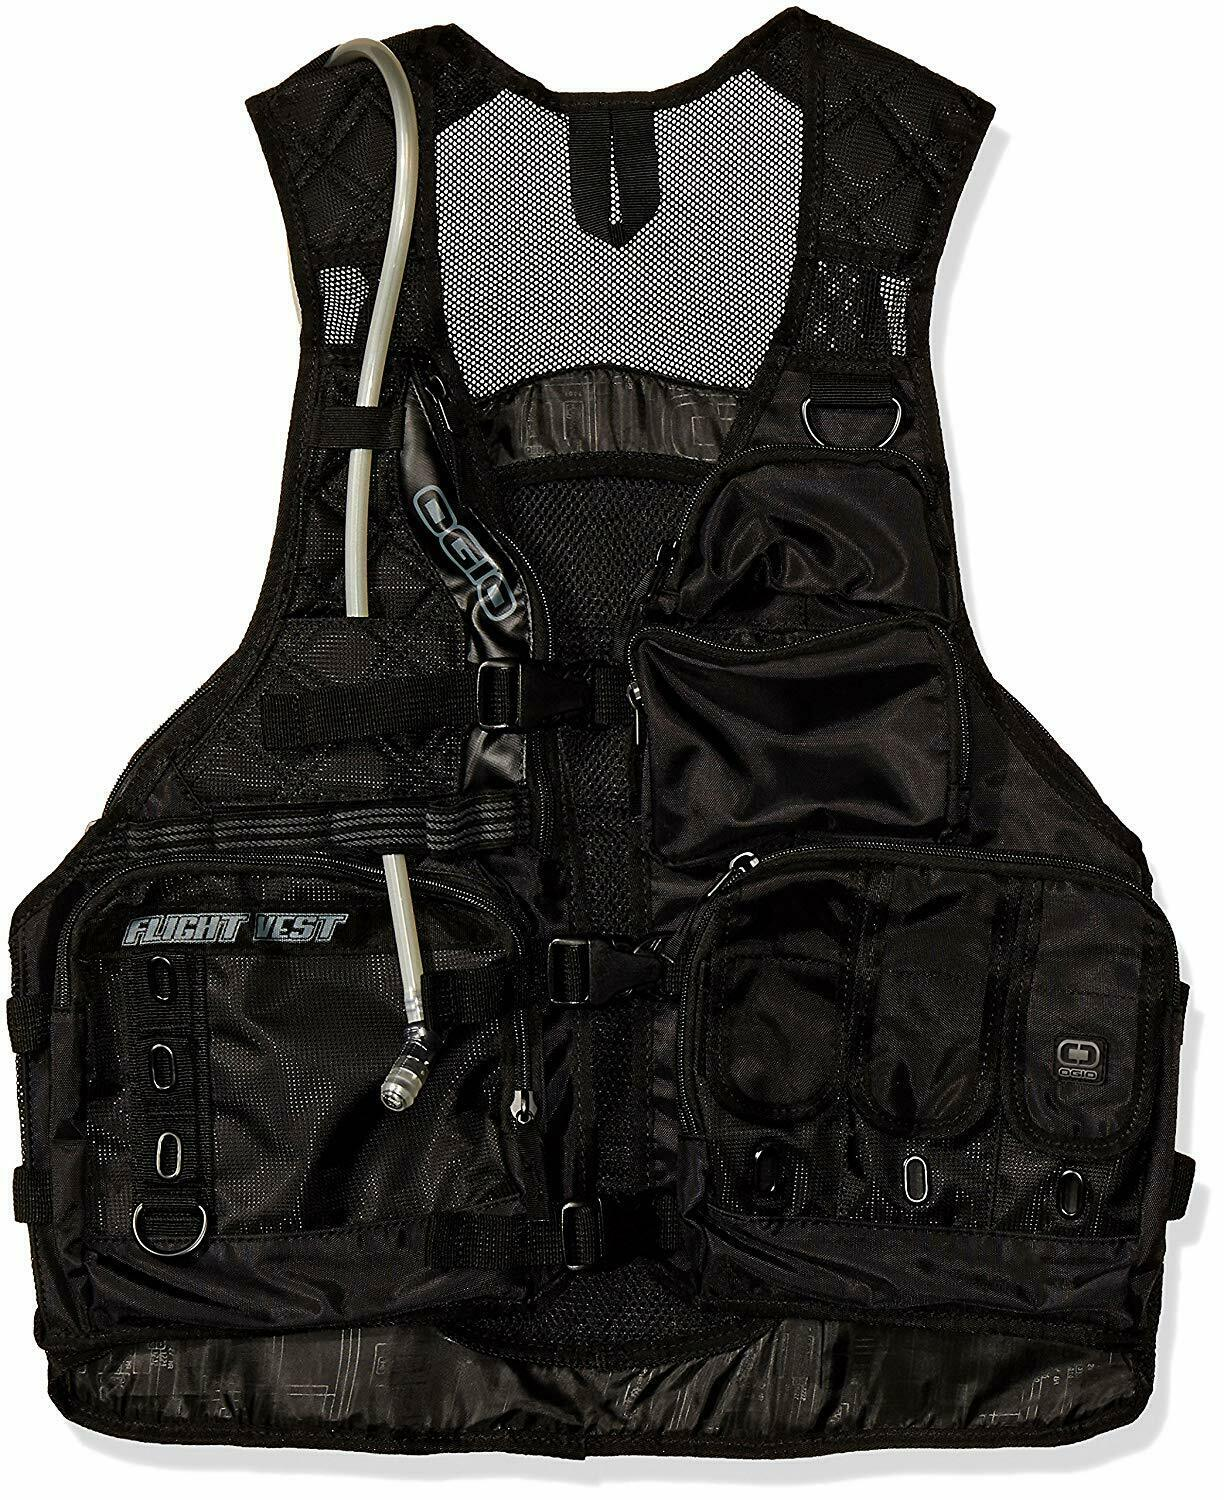 OGIO VEST Ogio Flight Vest Stealth 2019 model with Hydration Pouch